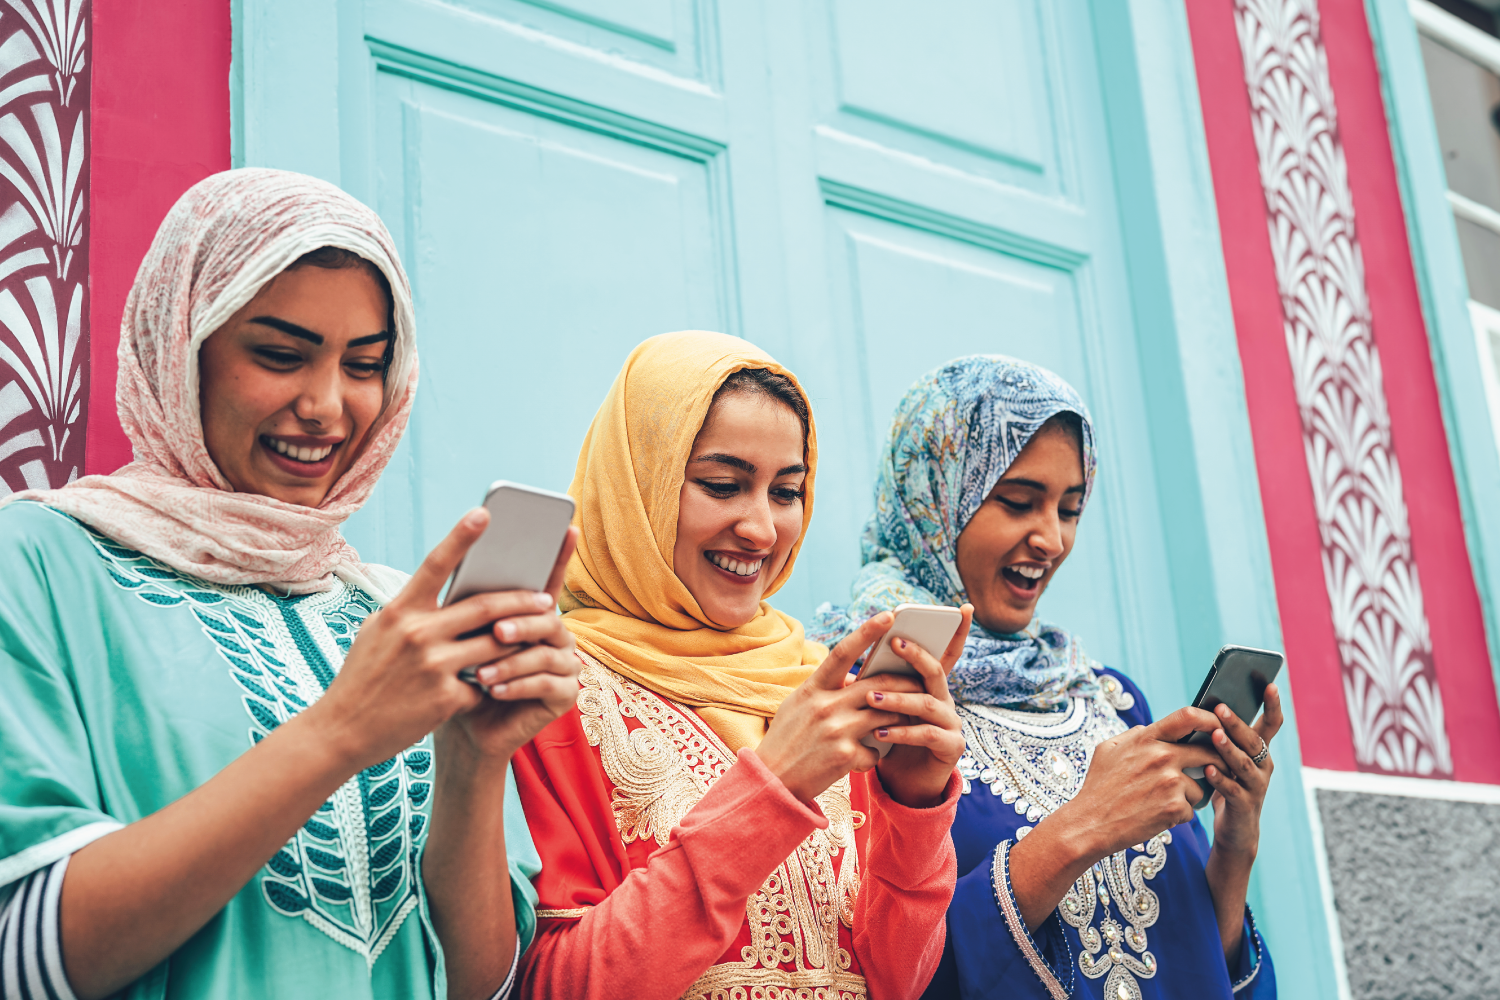 Women in hijab using smartphones